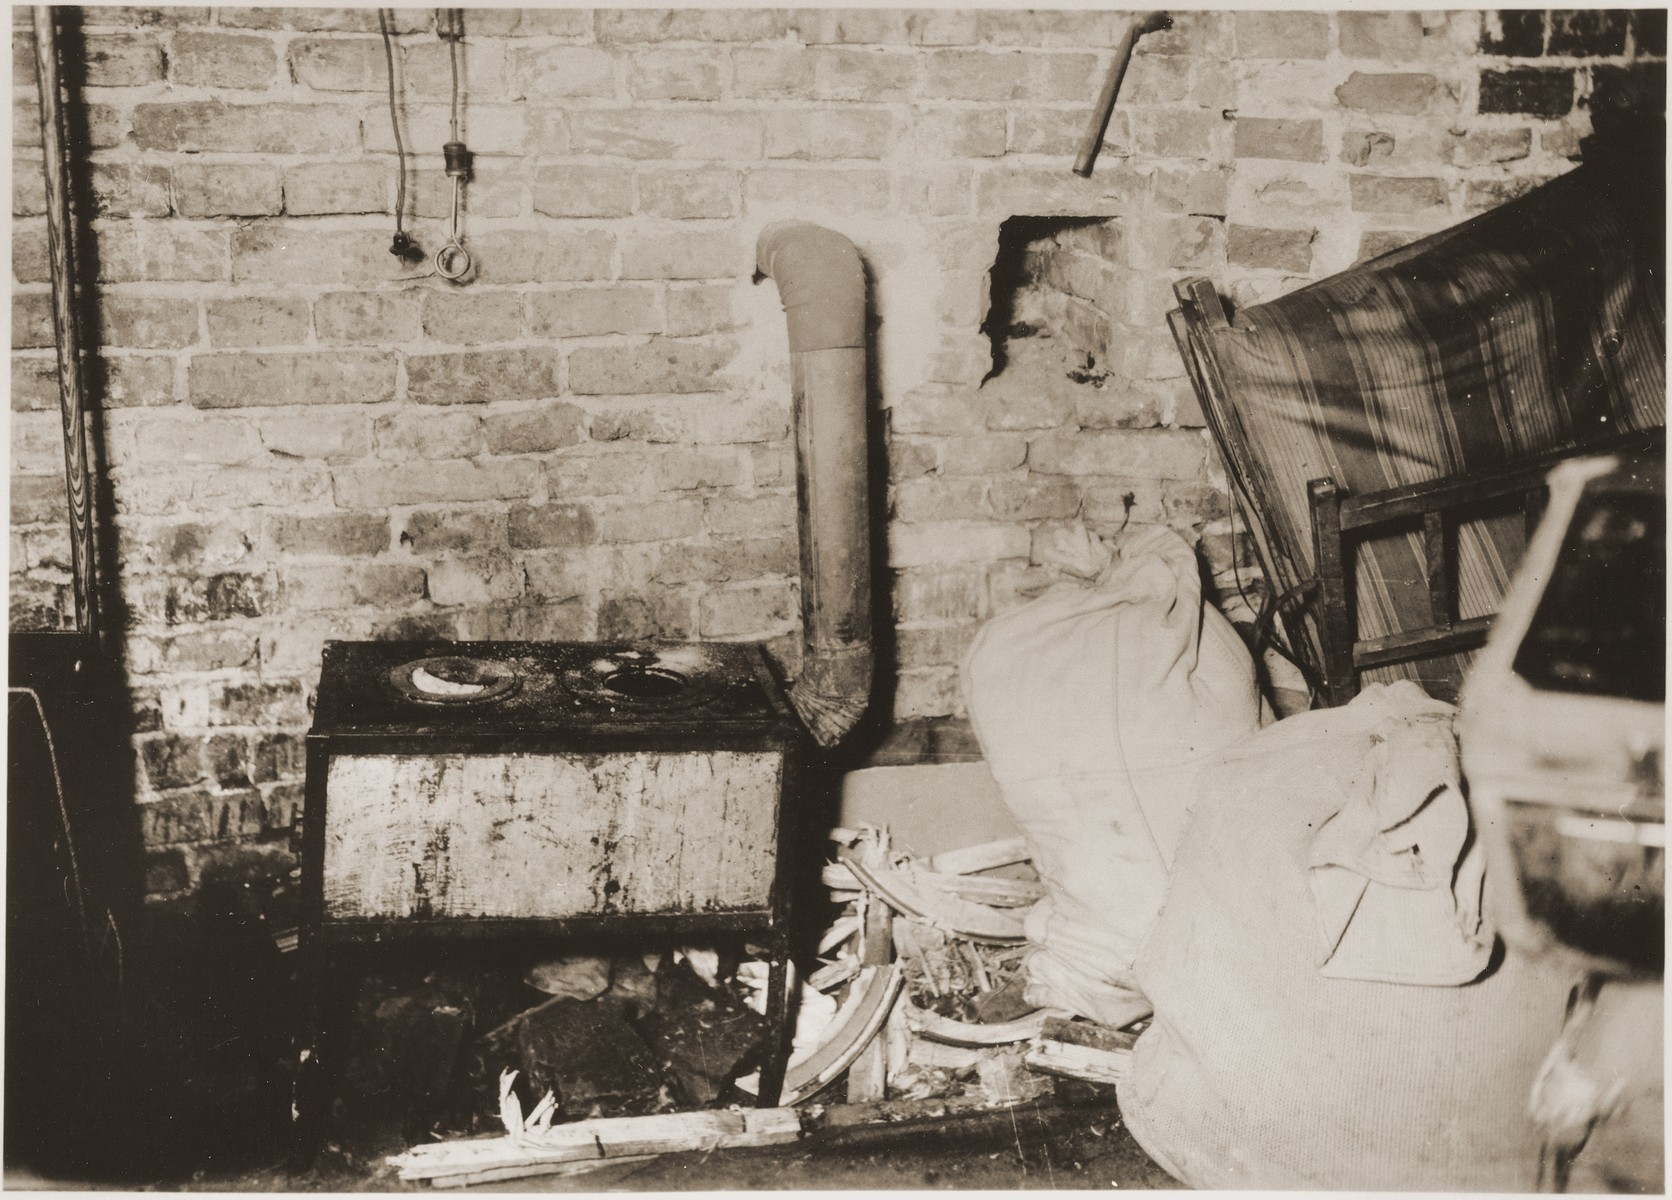 Cooking facilities in a bunker prepared by the Jewish resistance for the Warsaw ghetto uprising.